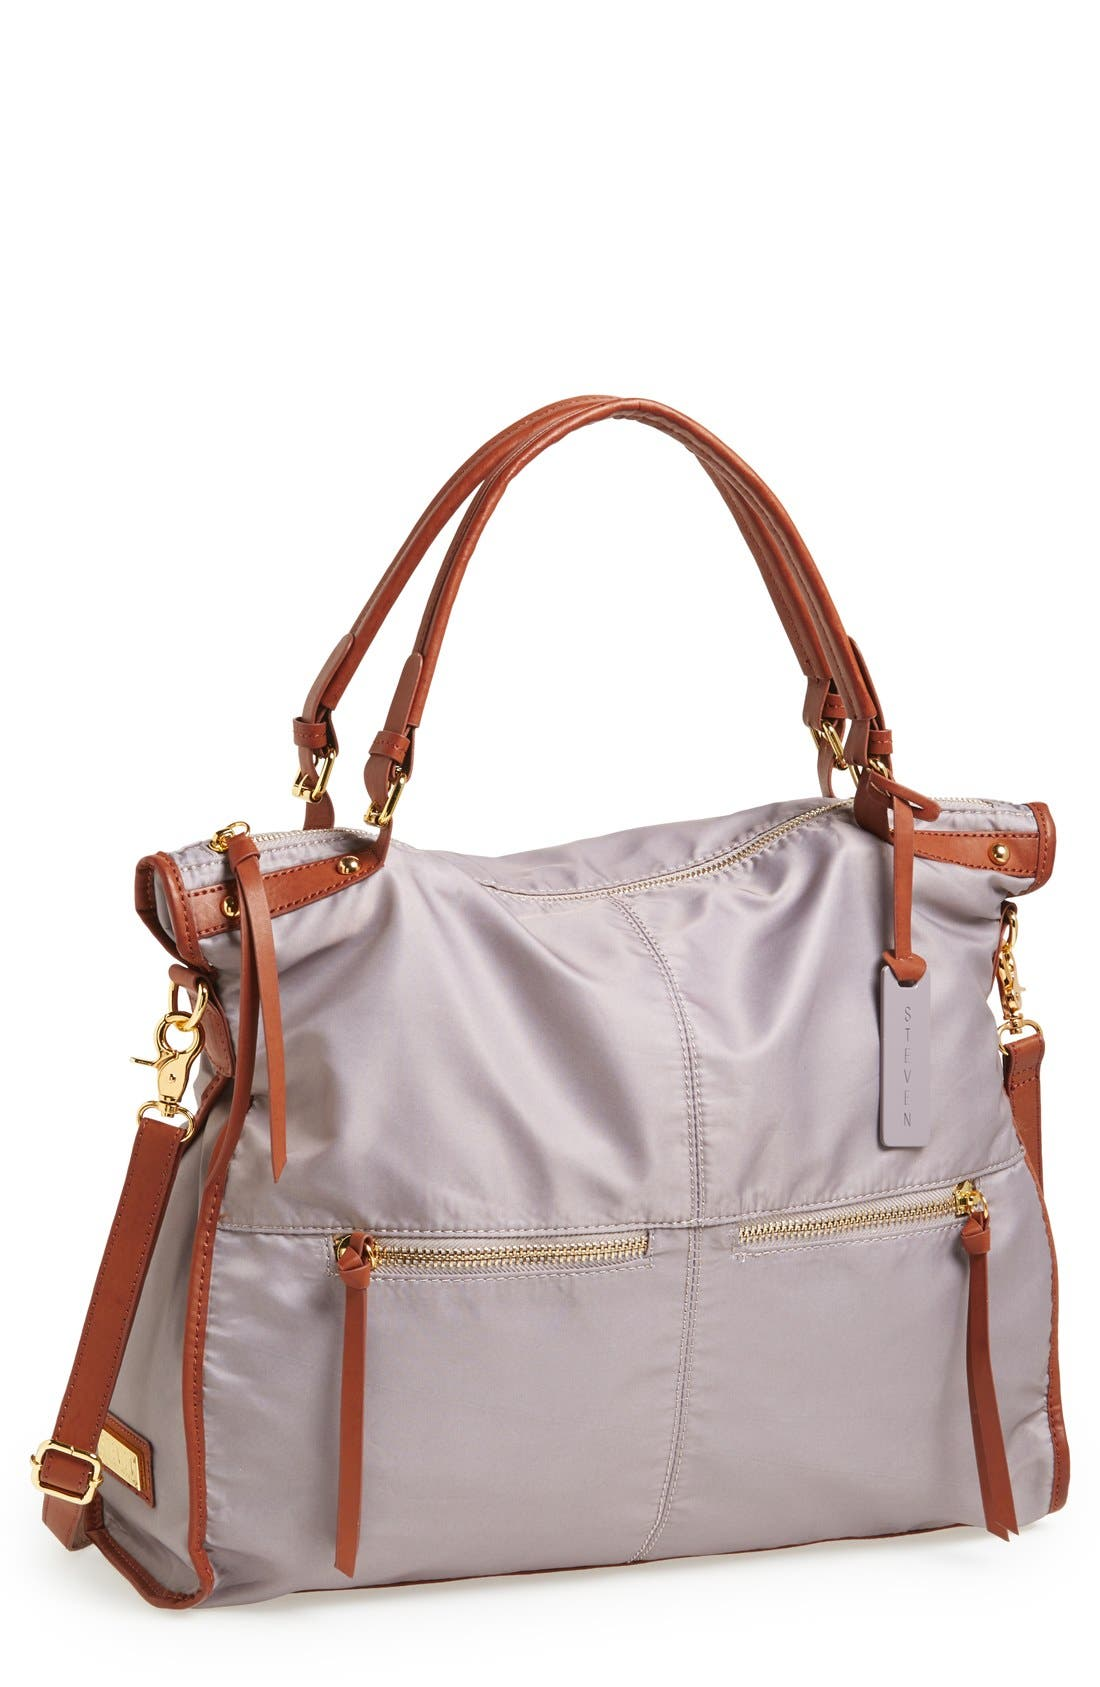 Alternate Image 1 Selected - Steven by Steve Madden 'Easy Going' Tote